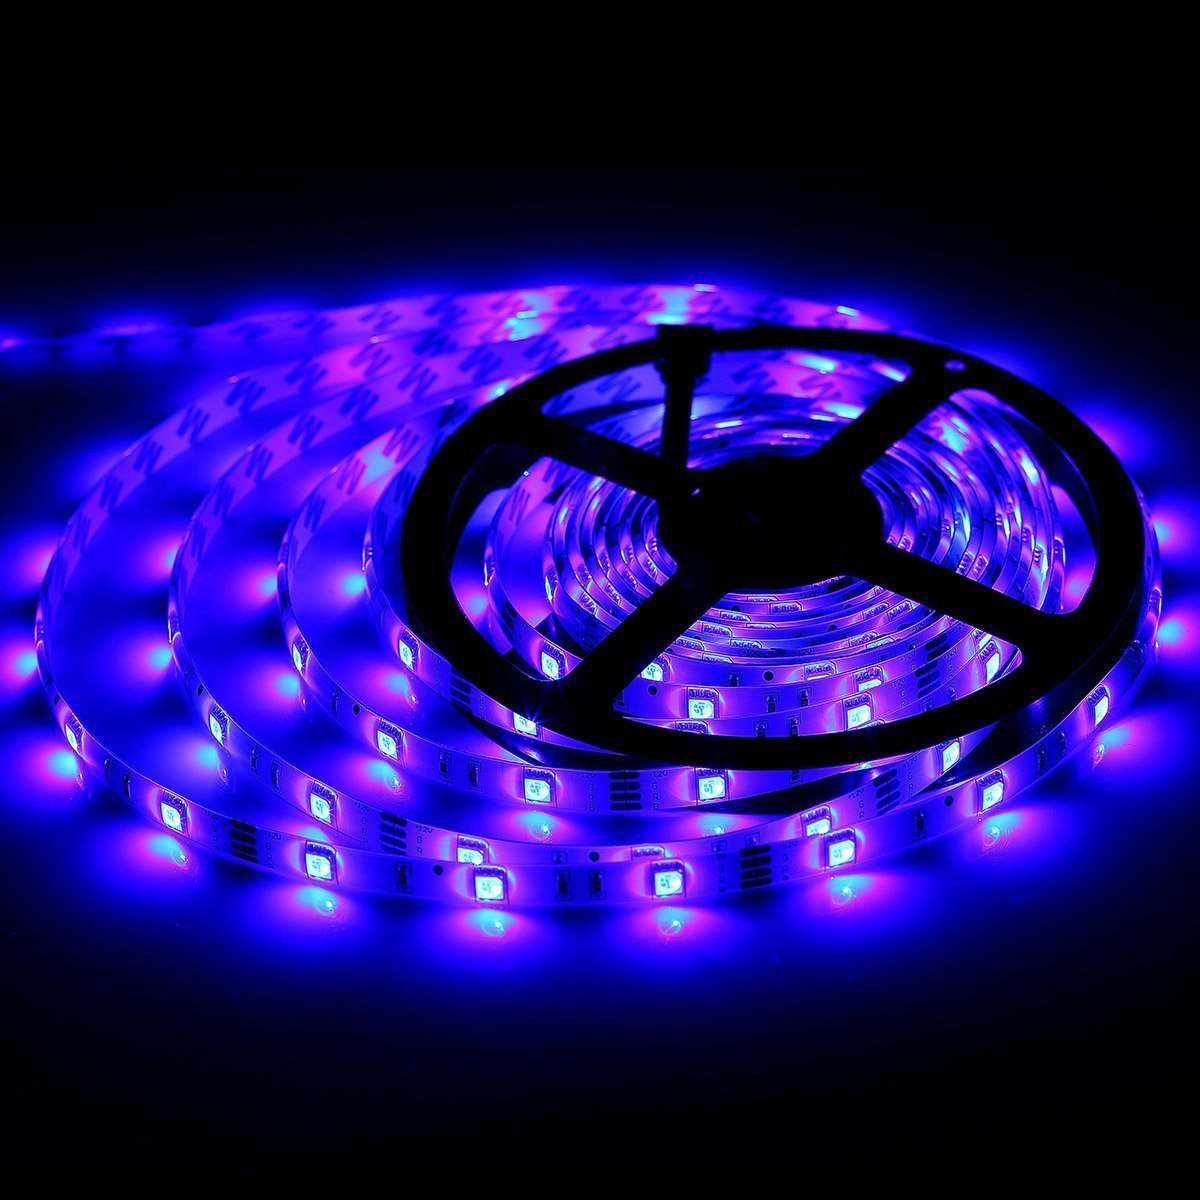 bmouo 2 reels 12v waterproof flexible rgb led strip light kit multi colored smd5050 300. Black Bedroom Furniture Sets. Home Design Ideas